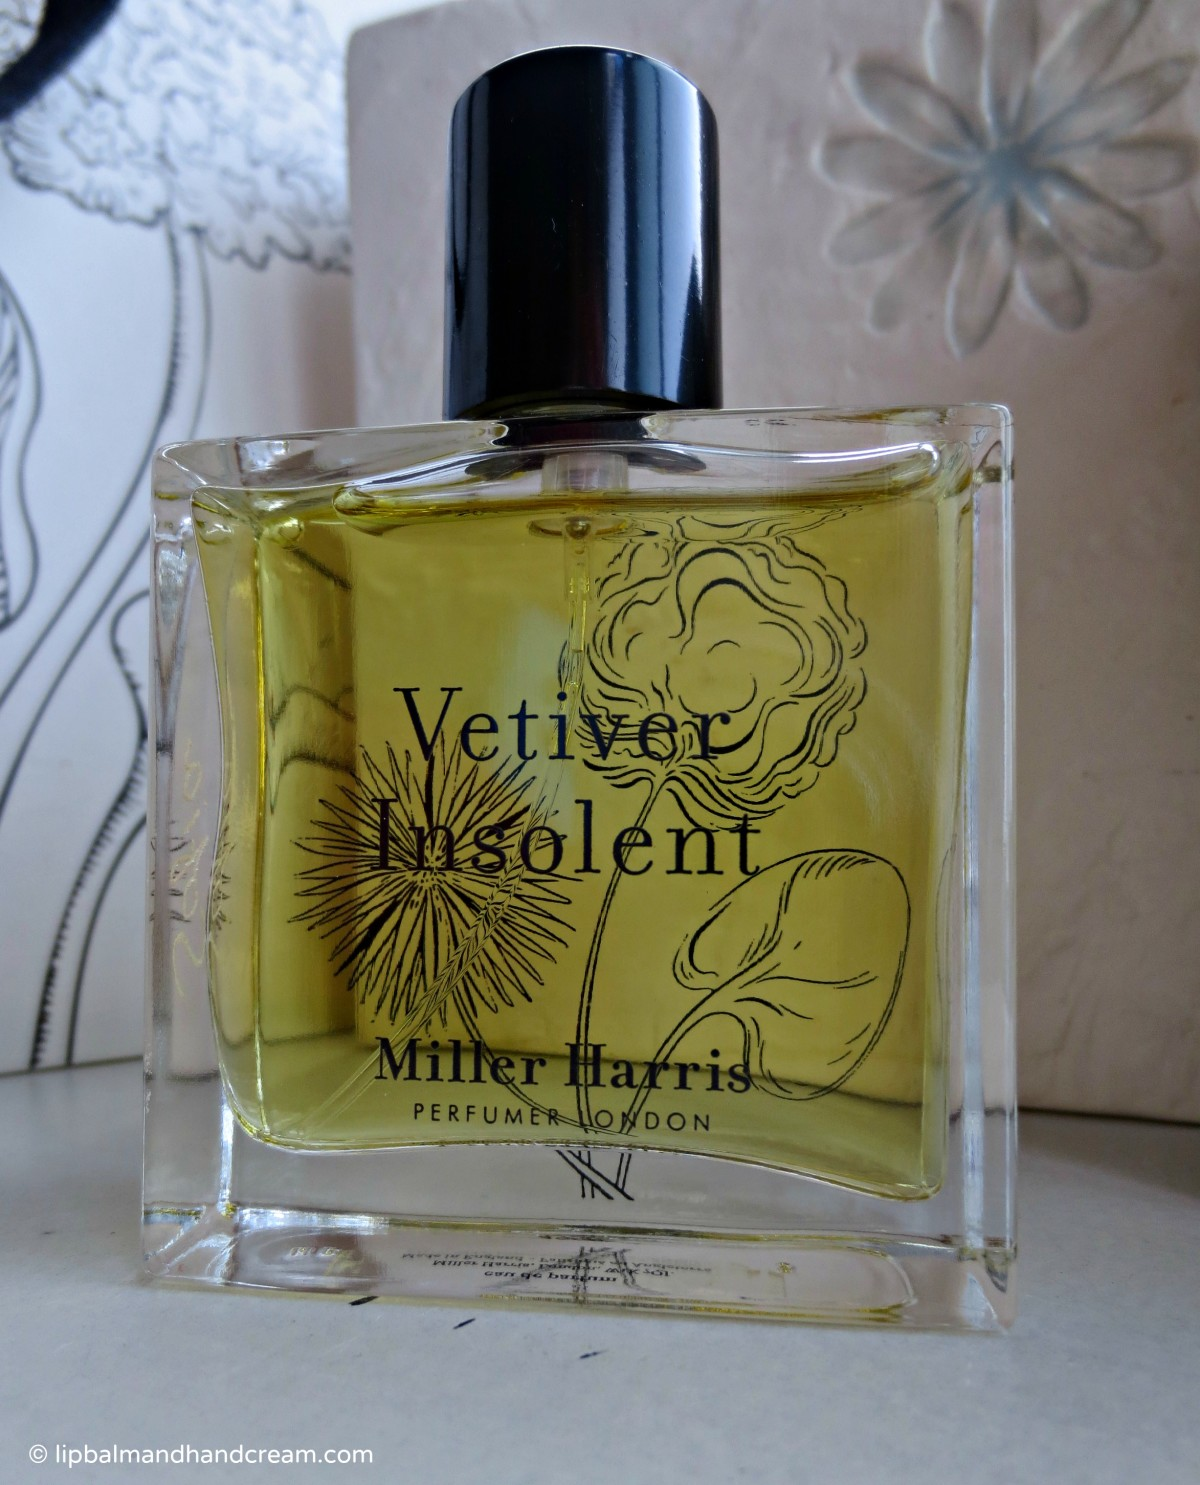 Vetiver Insolent – a new spicy unisex fragrance from Miller Harris